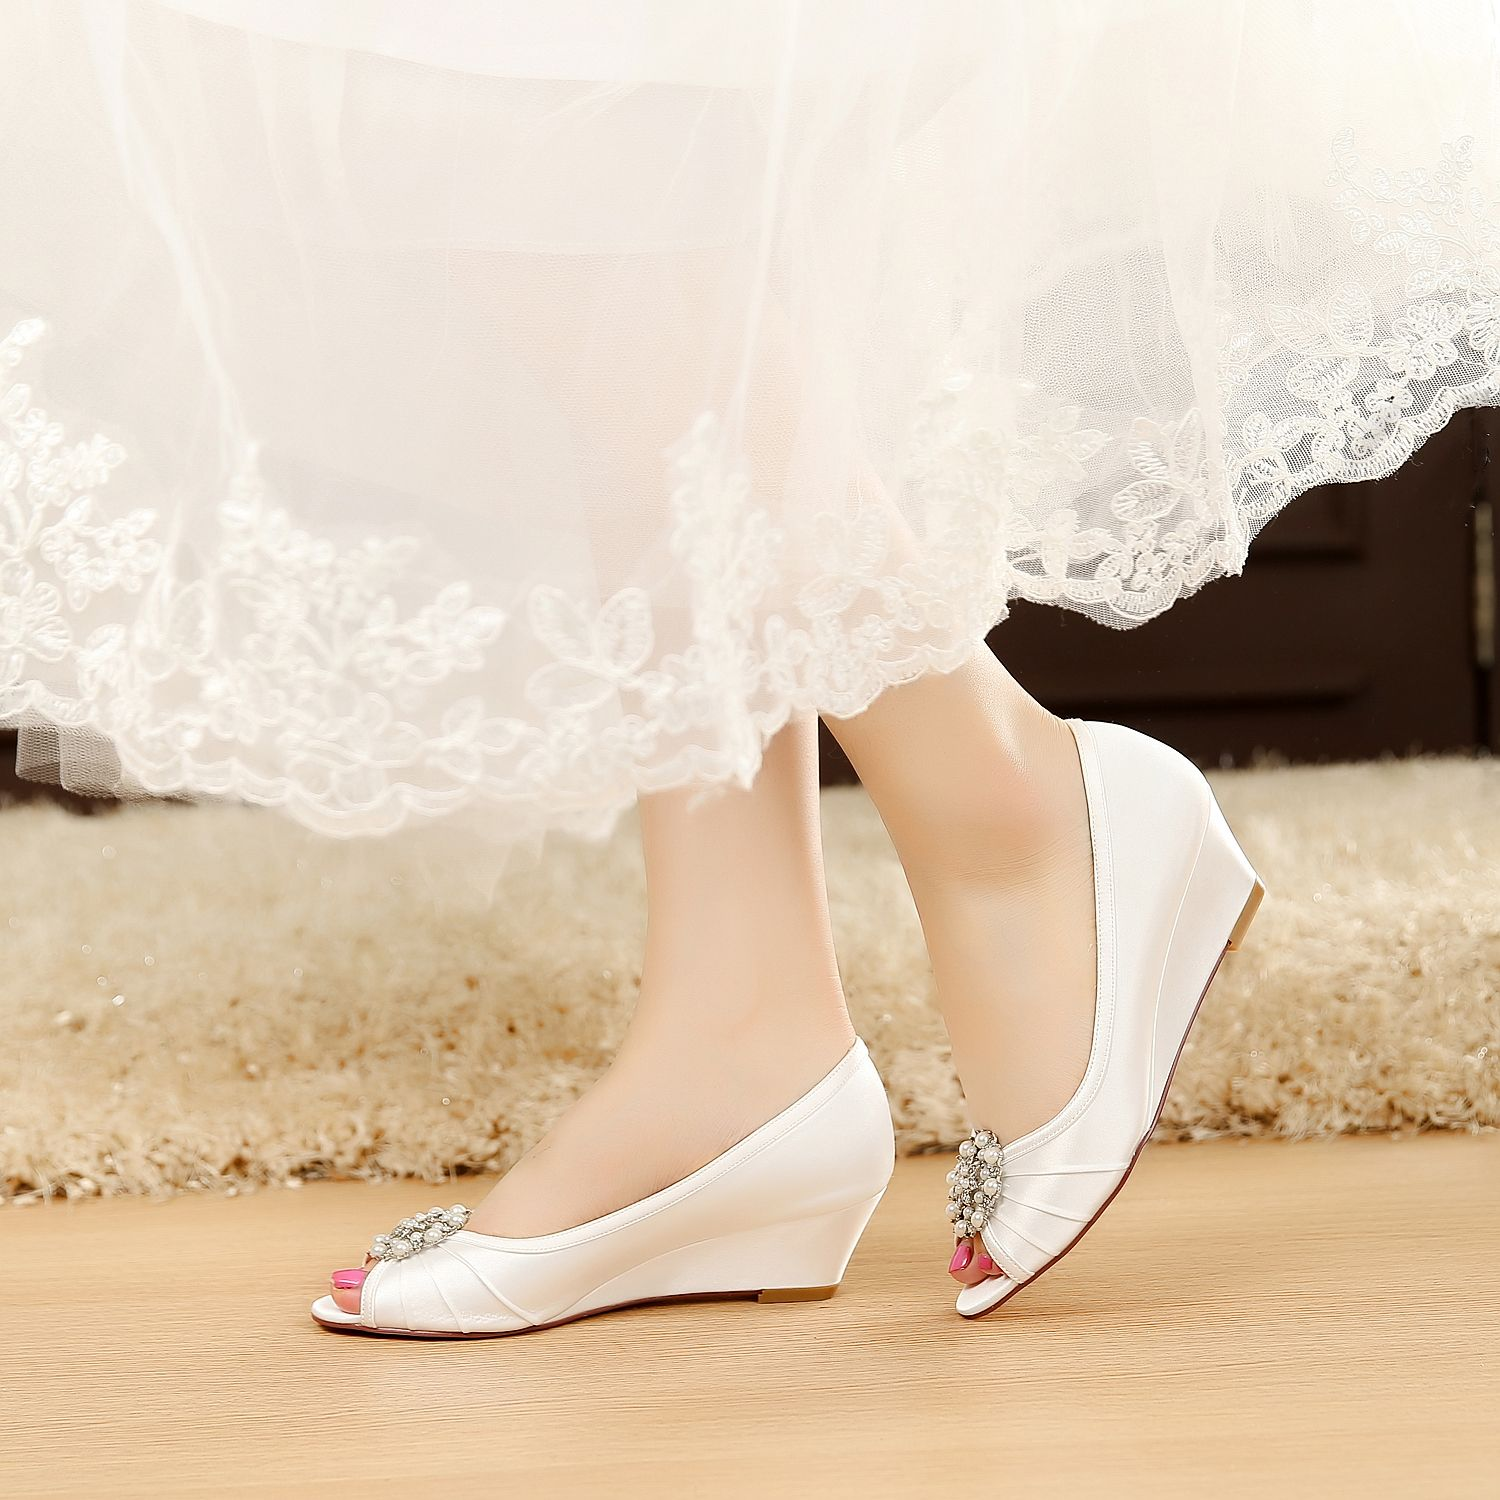 for arch with support wedges wide golf shoes wedge comforter travel comfortable feet shoe wedding walking